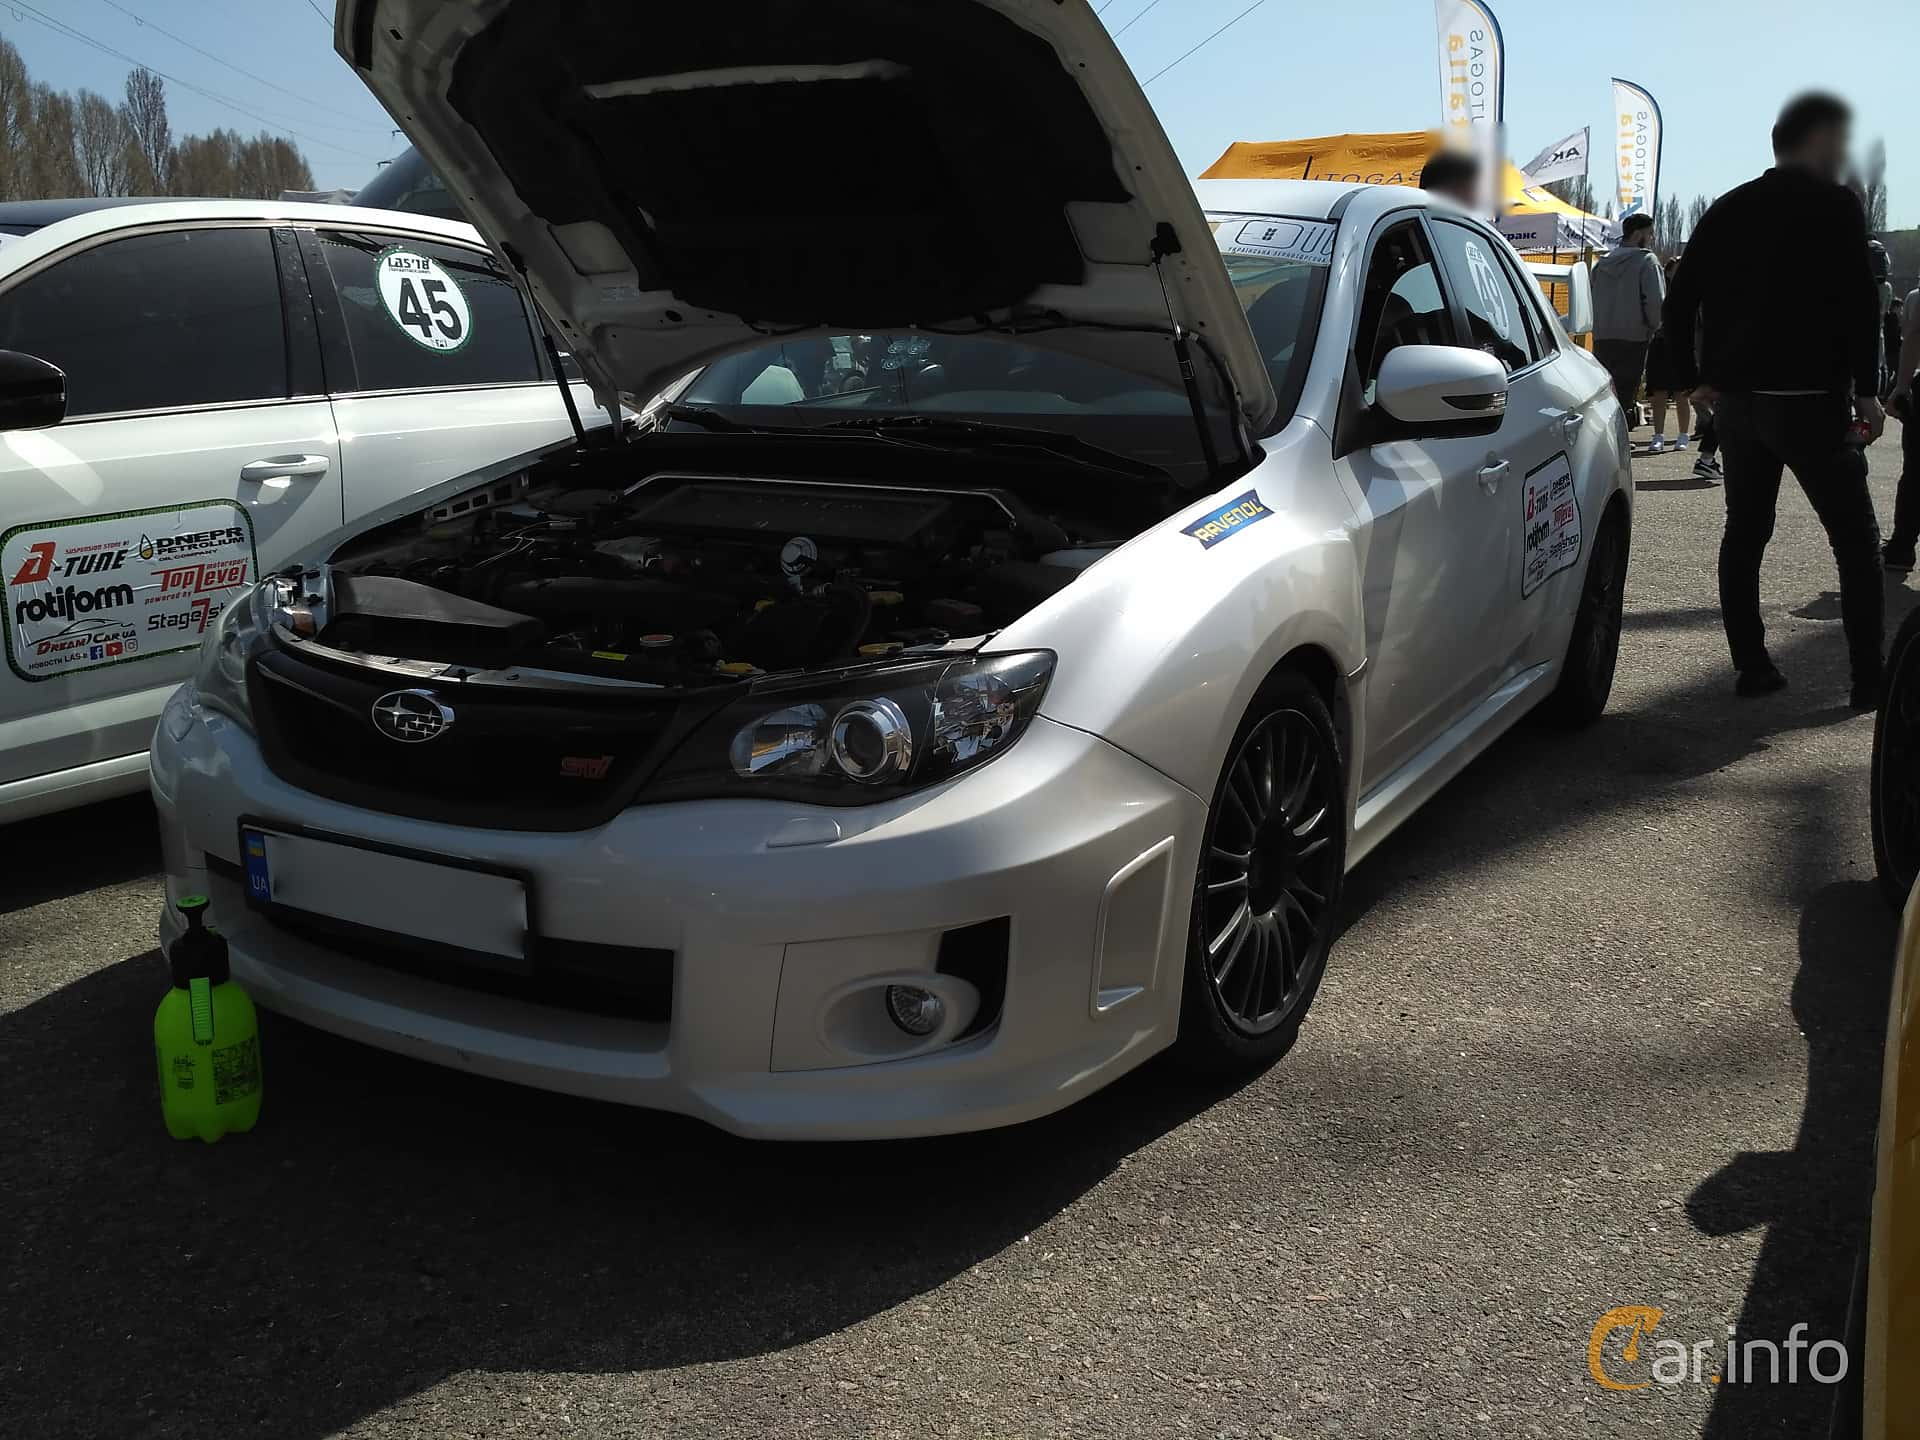 Subaru WRX STi Sedan 2.5 4WD Manual, 300hp, 2007 at Ltava Time Attack 1st Stage